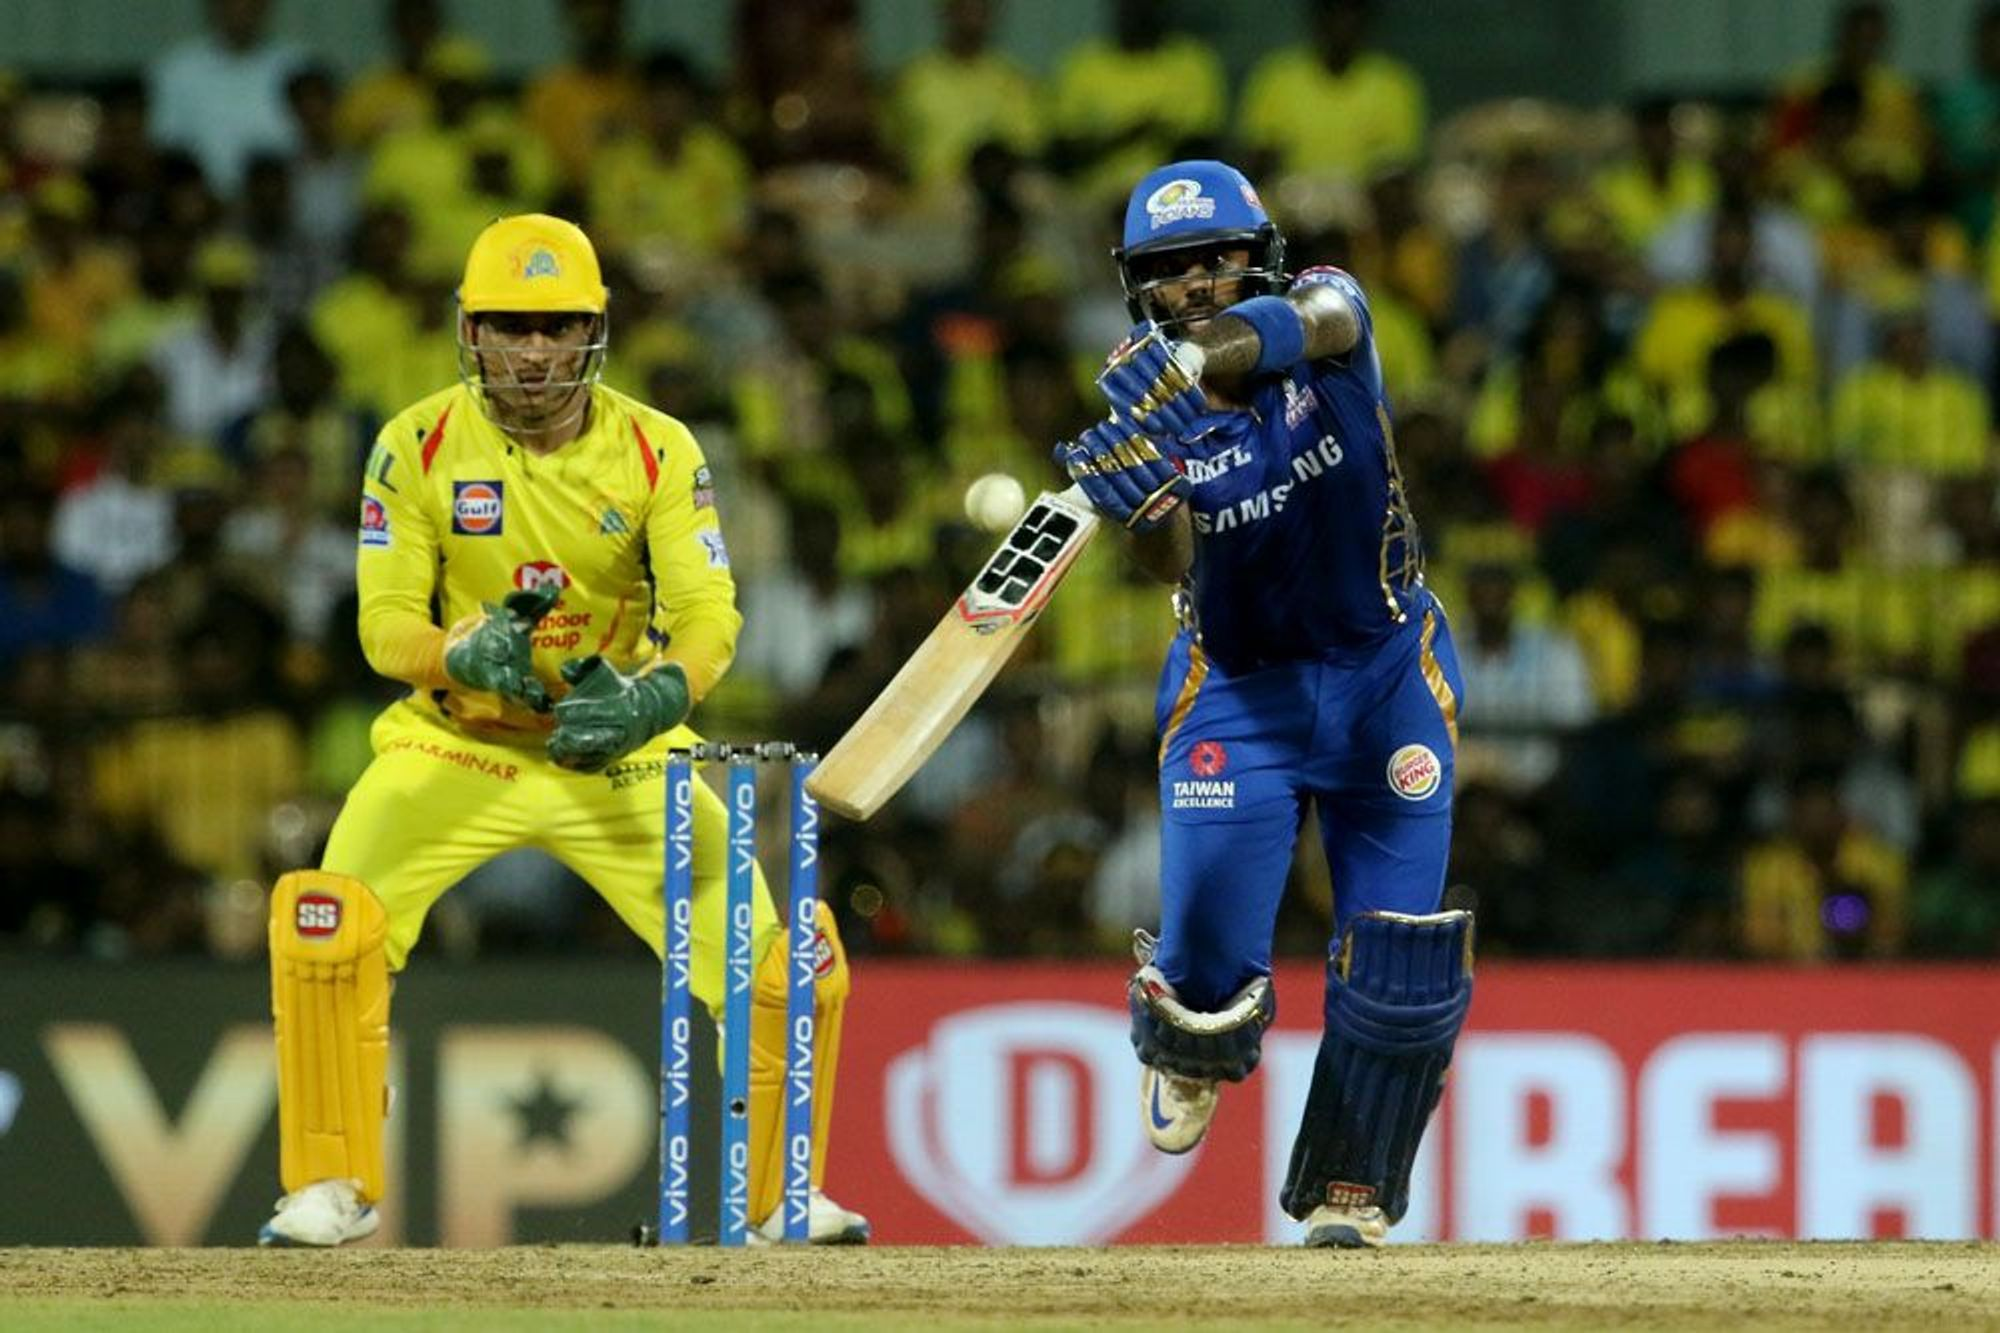 IPL 2019: Qualifier 1: CSK Vs MI: Suryakumar, spinners guide dominant Mumbai Indians to final - As it happened